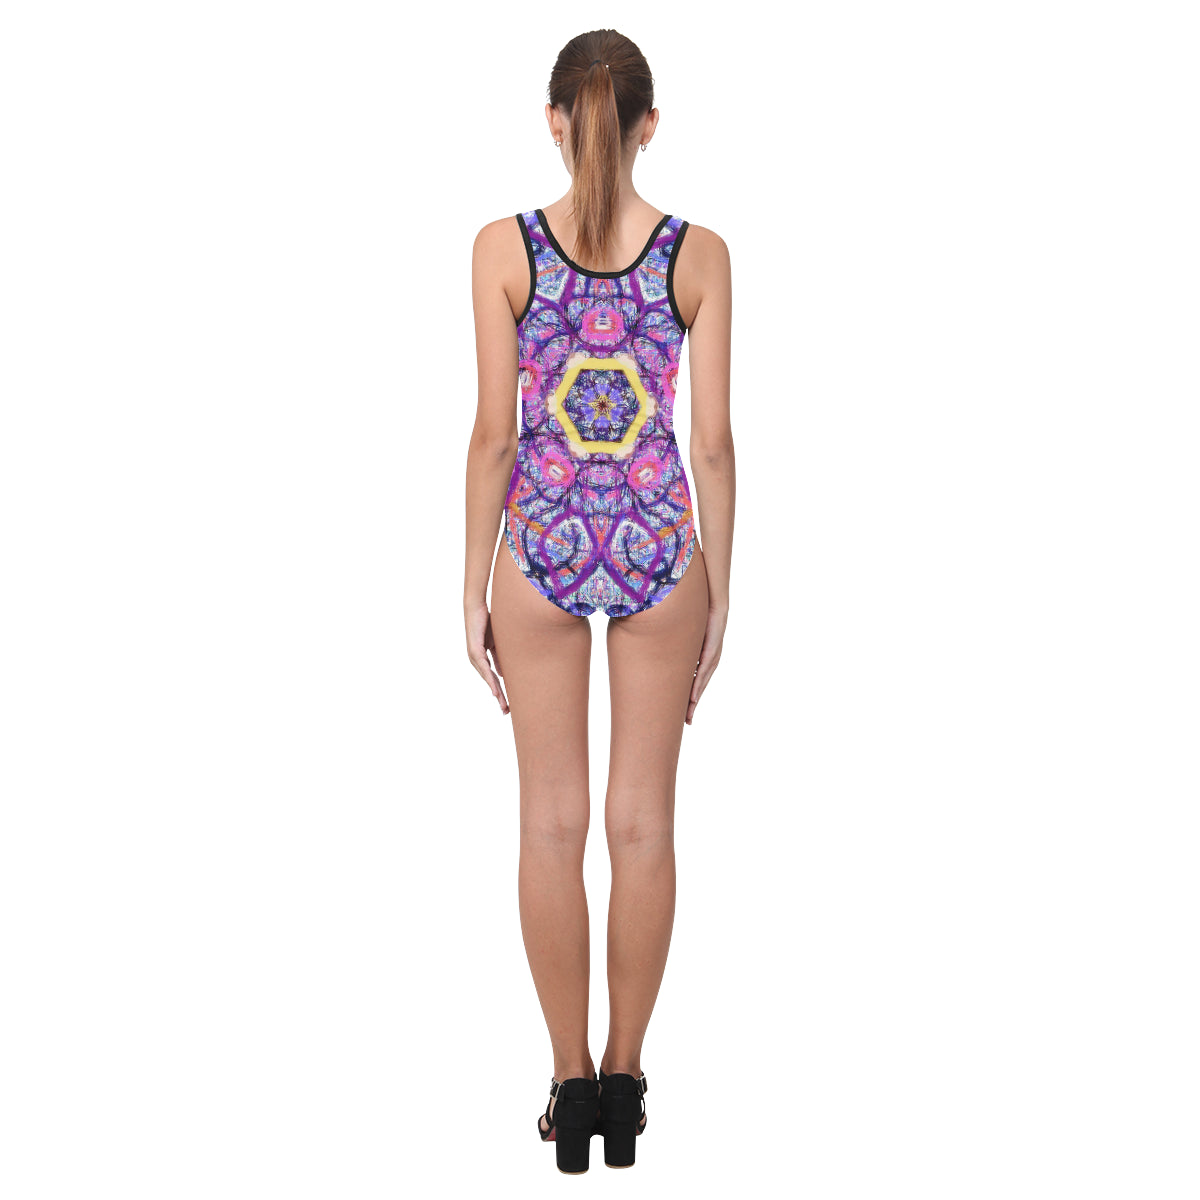 Thleudron Women's Royalty Vest One Piece Swimsuit (Model S04) - Thleudron